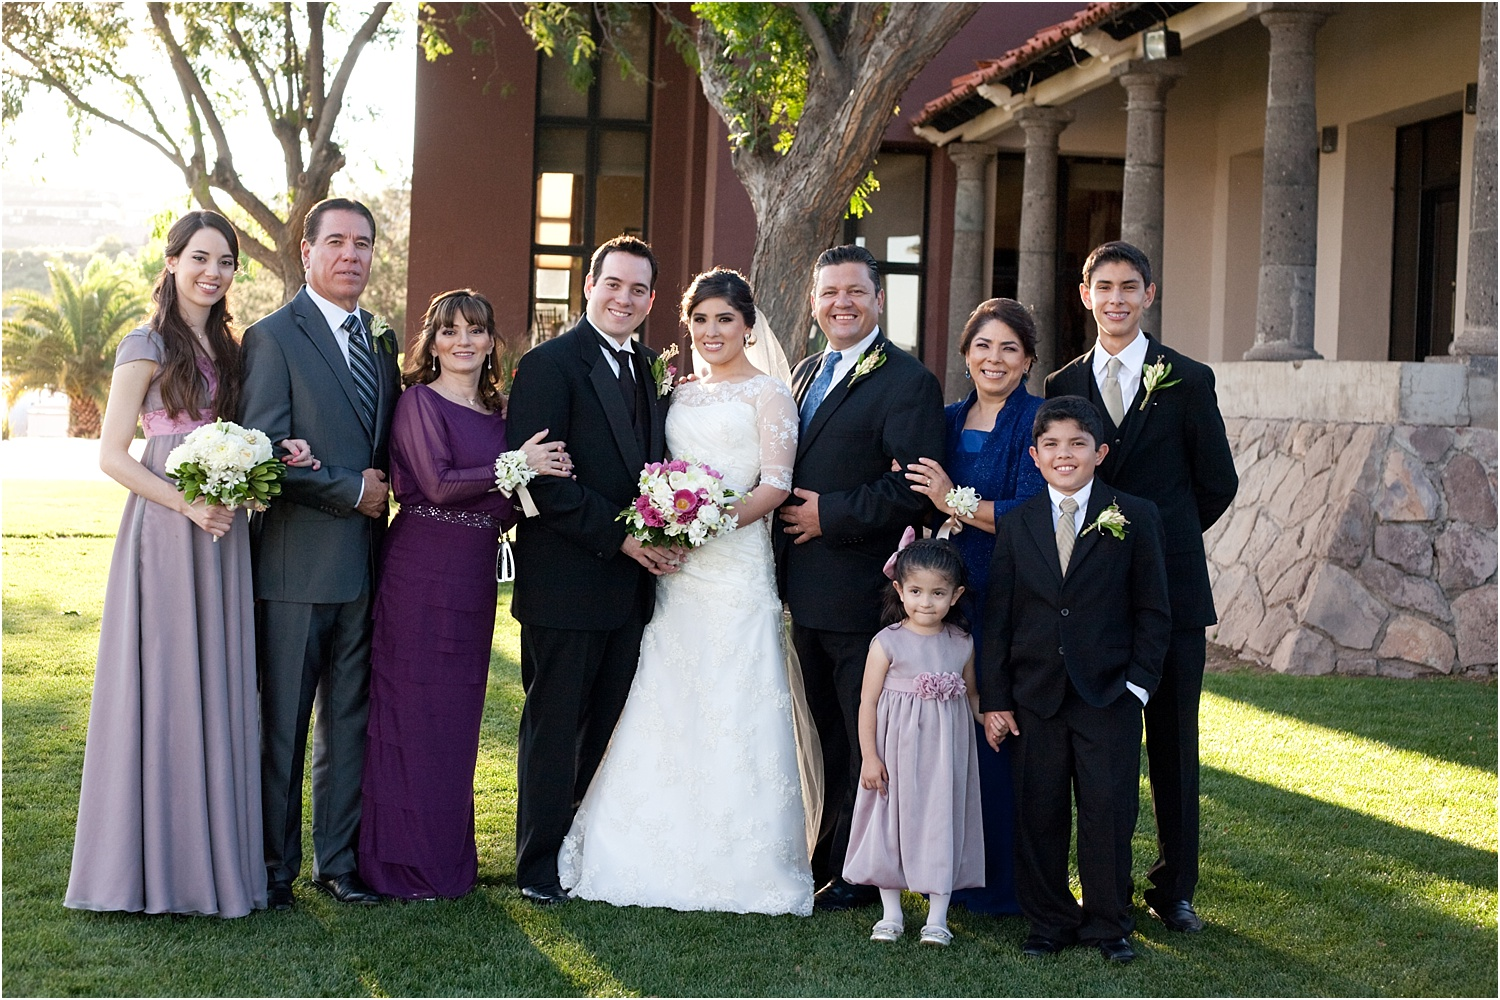 How to photograph family and bridal party portraits quickly at weddings 8